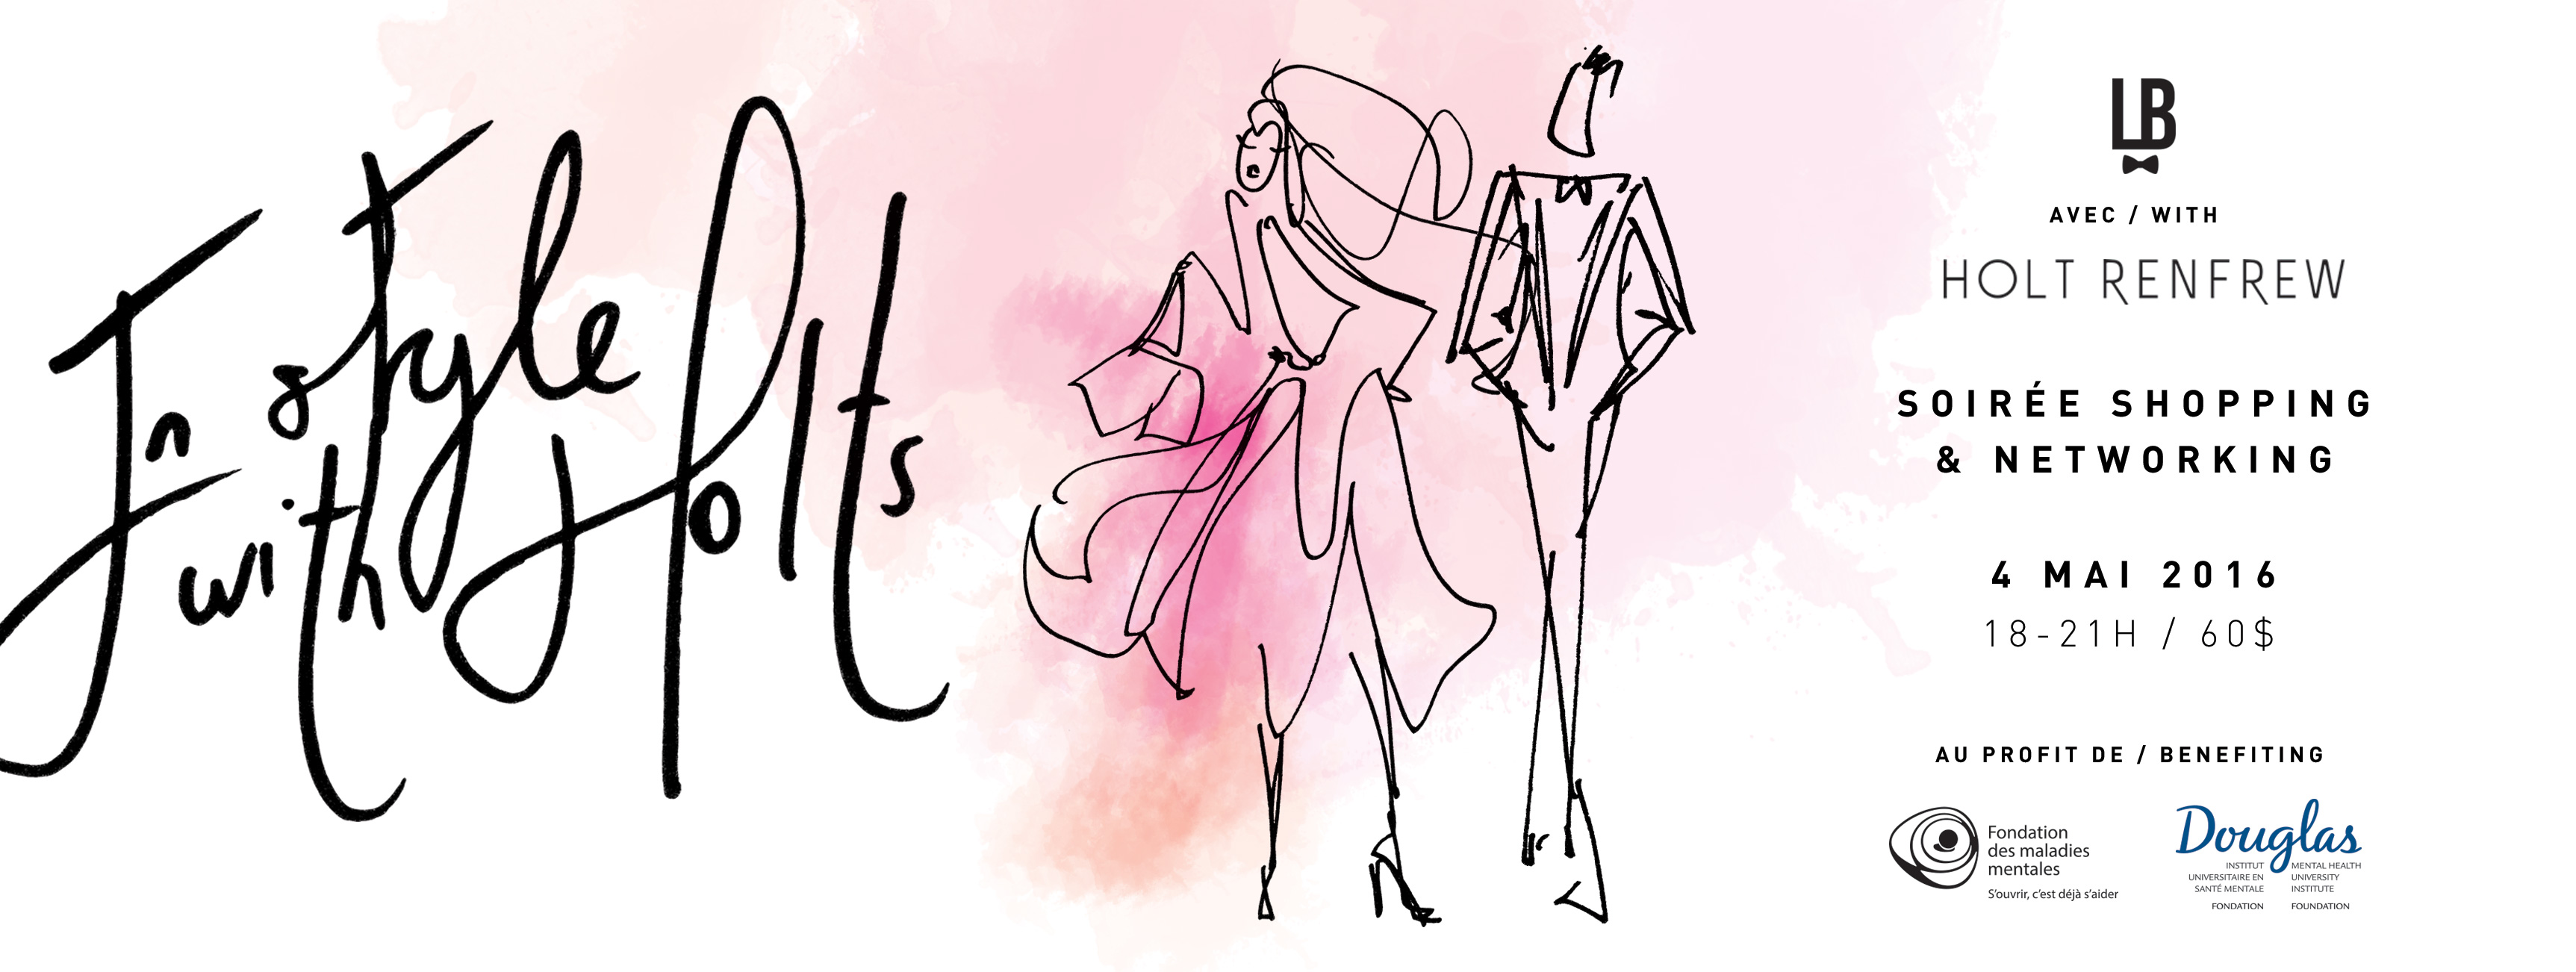 Lets Bond In Style with Holts Holt Renfrew